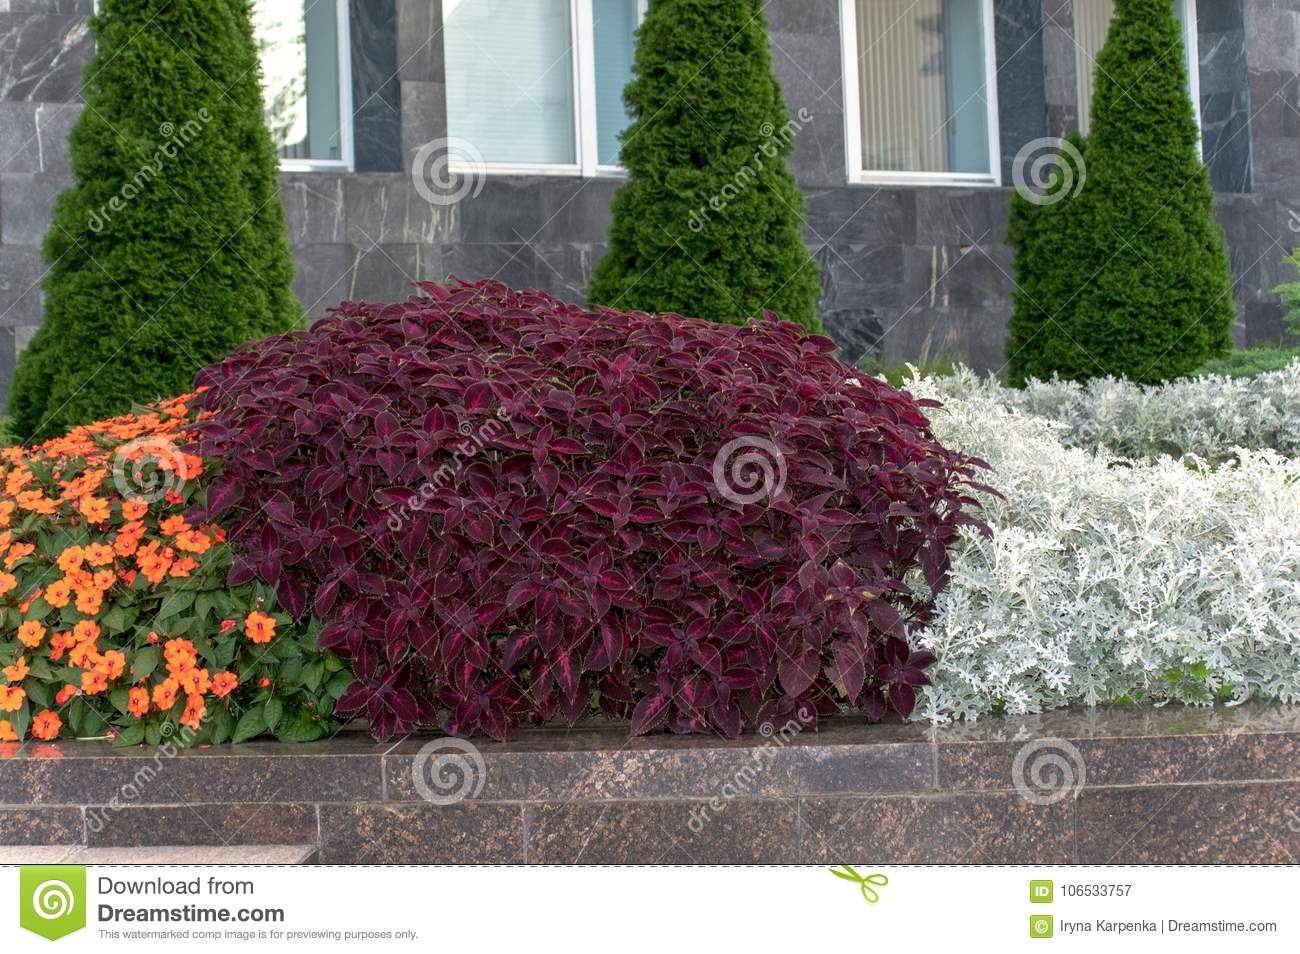 Flower beds with various flowers and plants stock image image of download flower beds with various flowers and plants stock image image of spring garden mightylinksfo